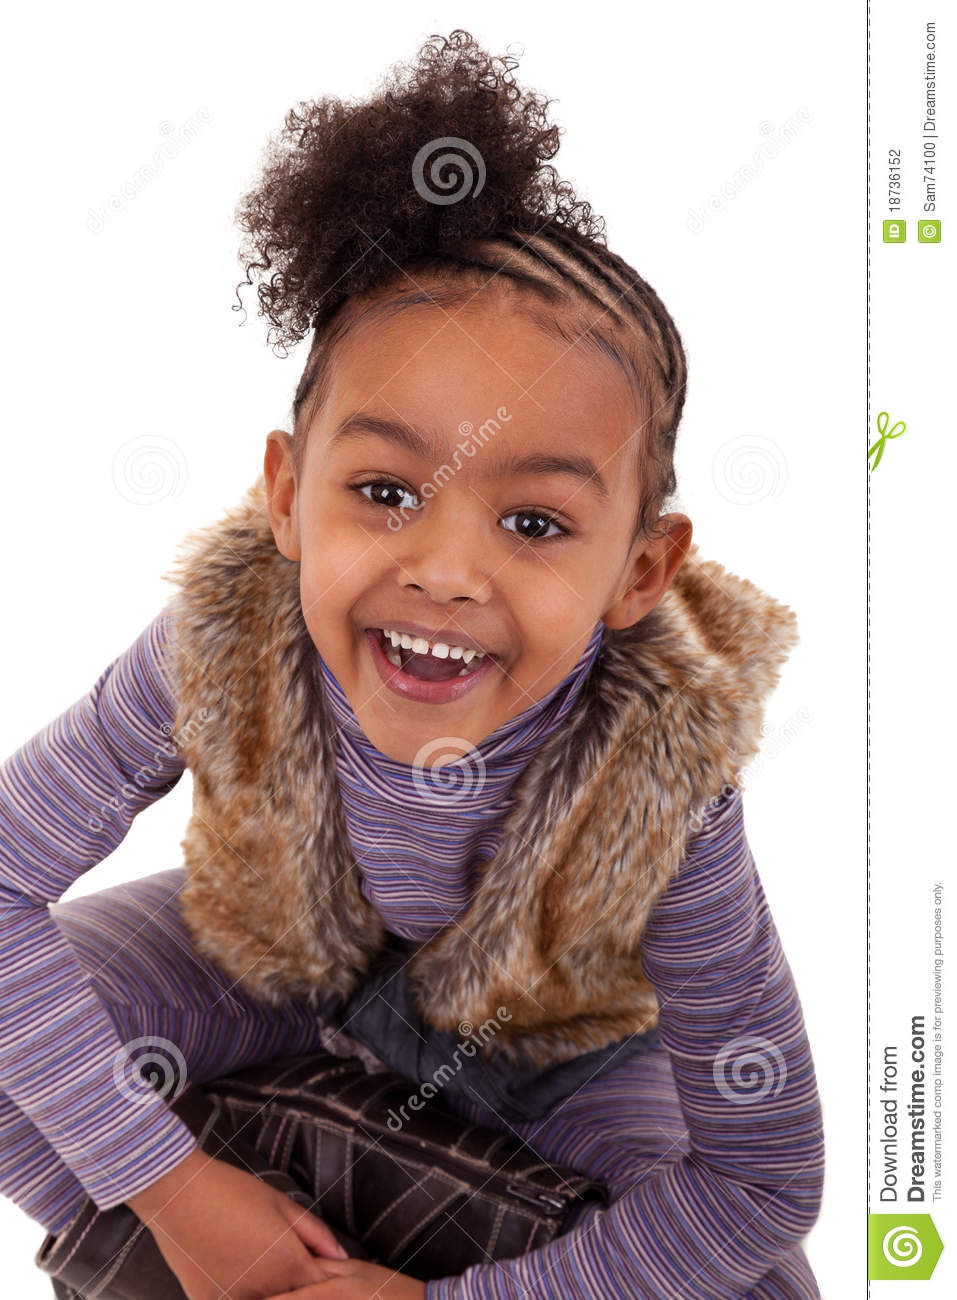 Cute Black Girl Smiling Stock Photo. Image Of Ethnic